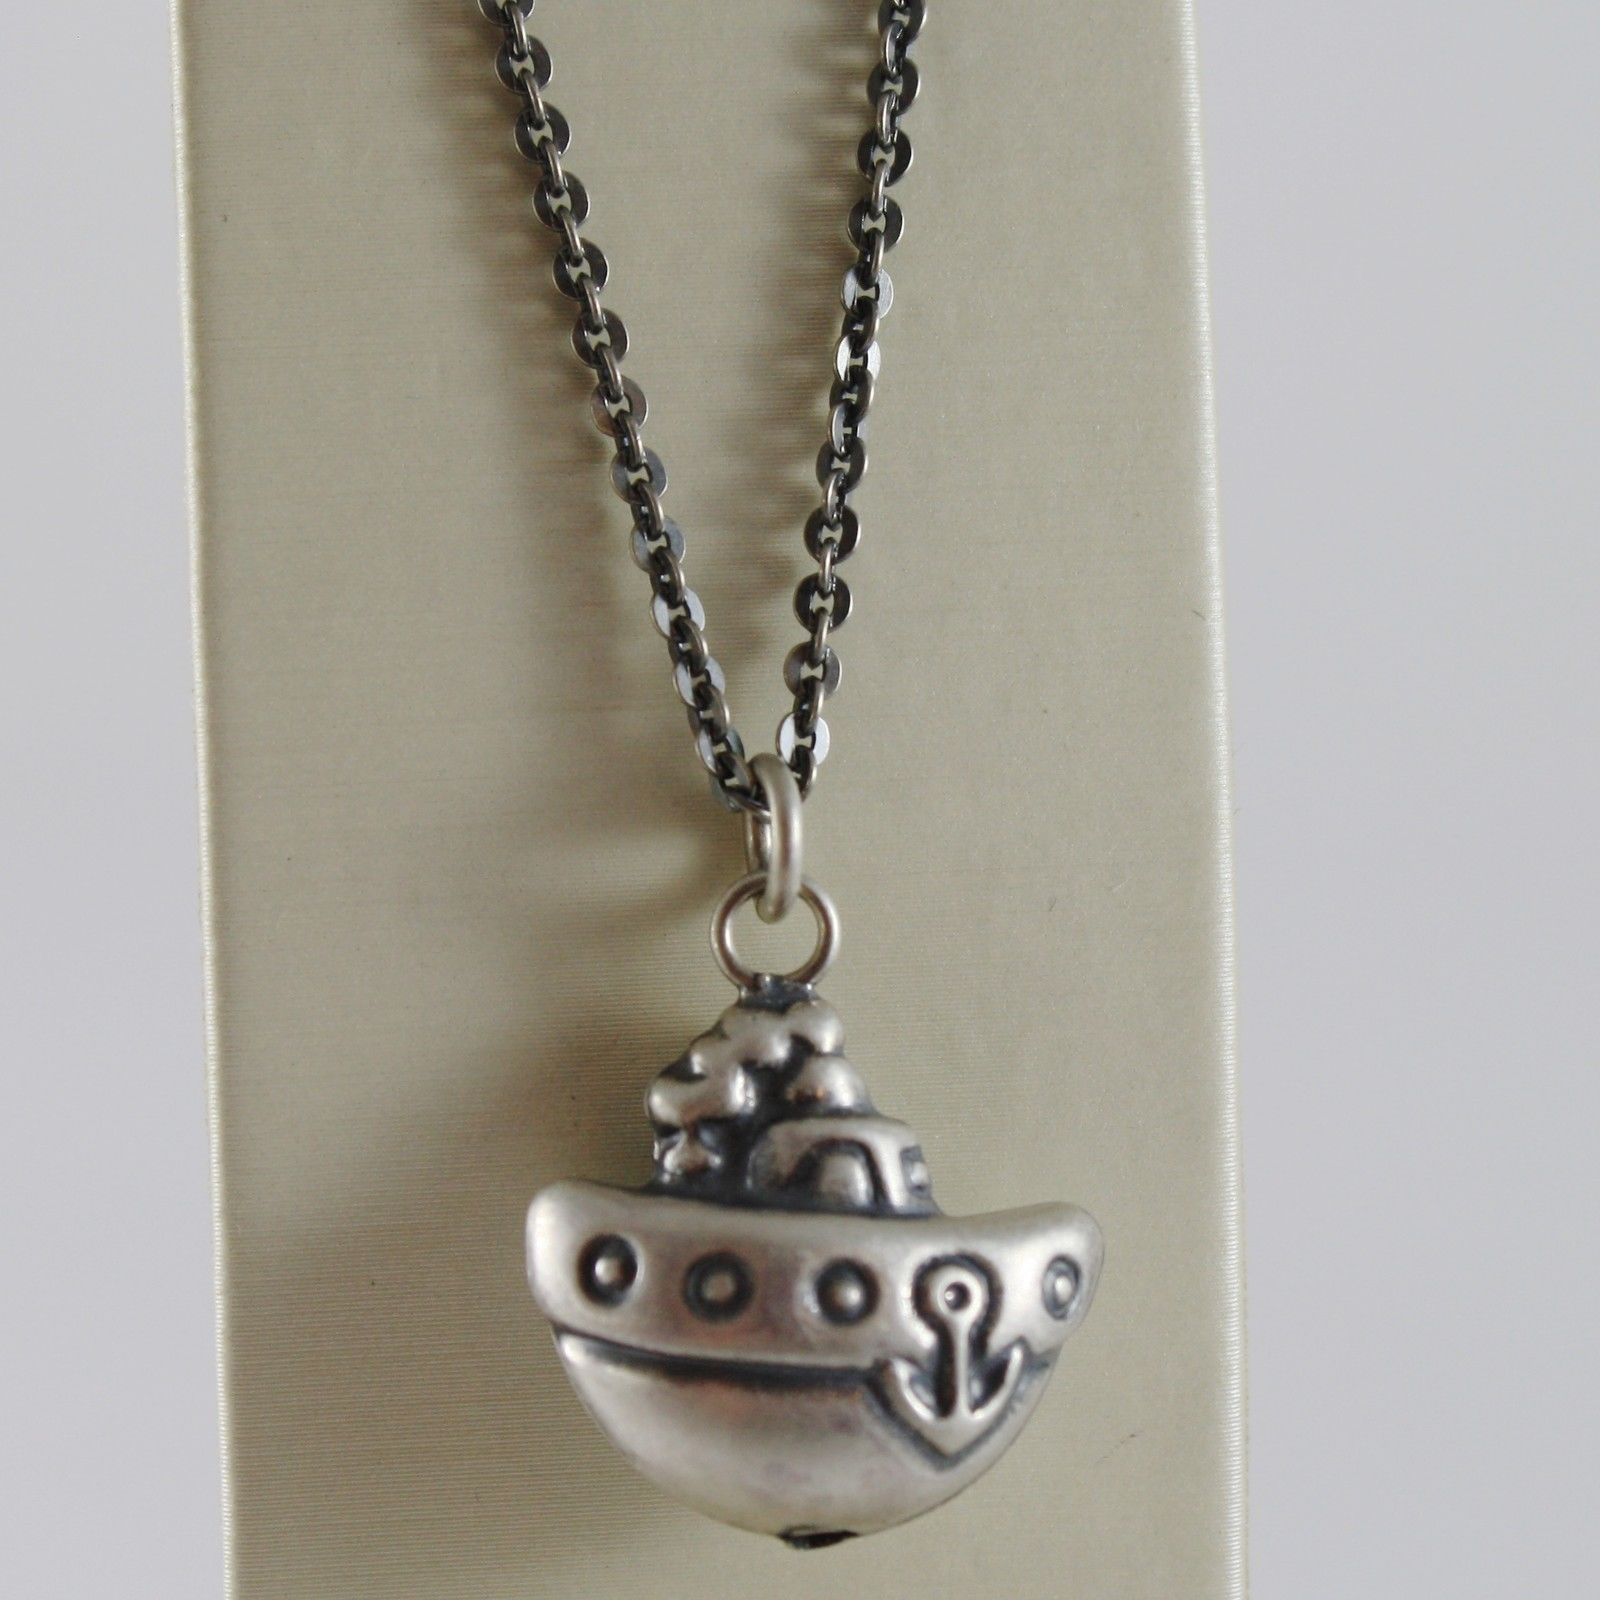 925 BURNISHED SILVER NECKLACE WITH ROUNDED BOAT ANCHOR PENDANT MADE IN ITALY